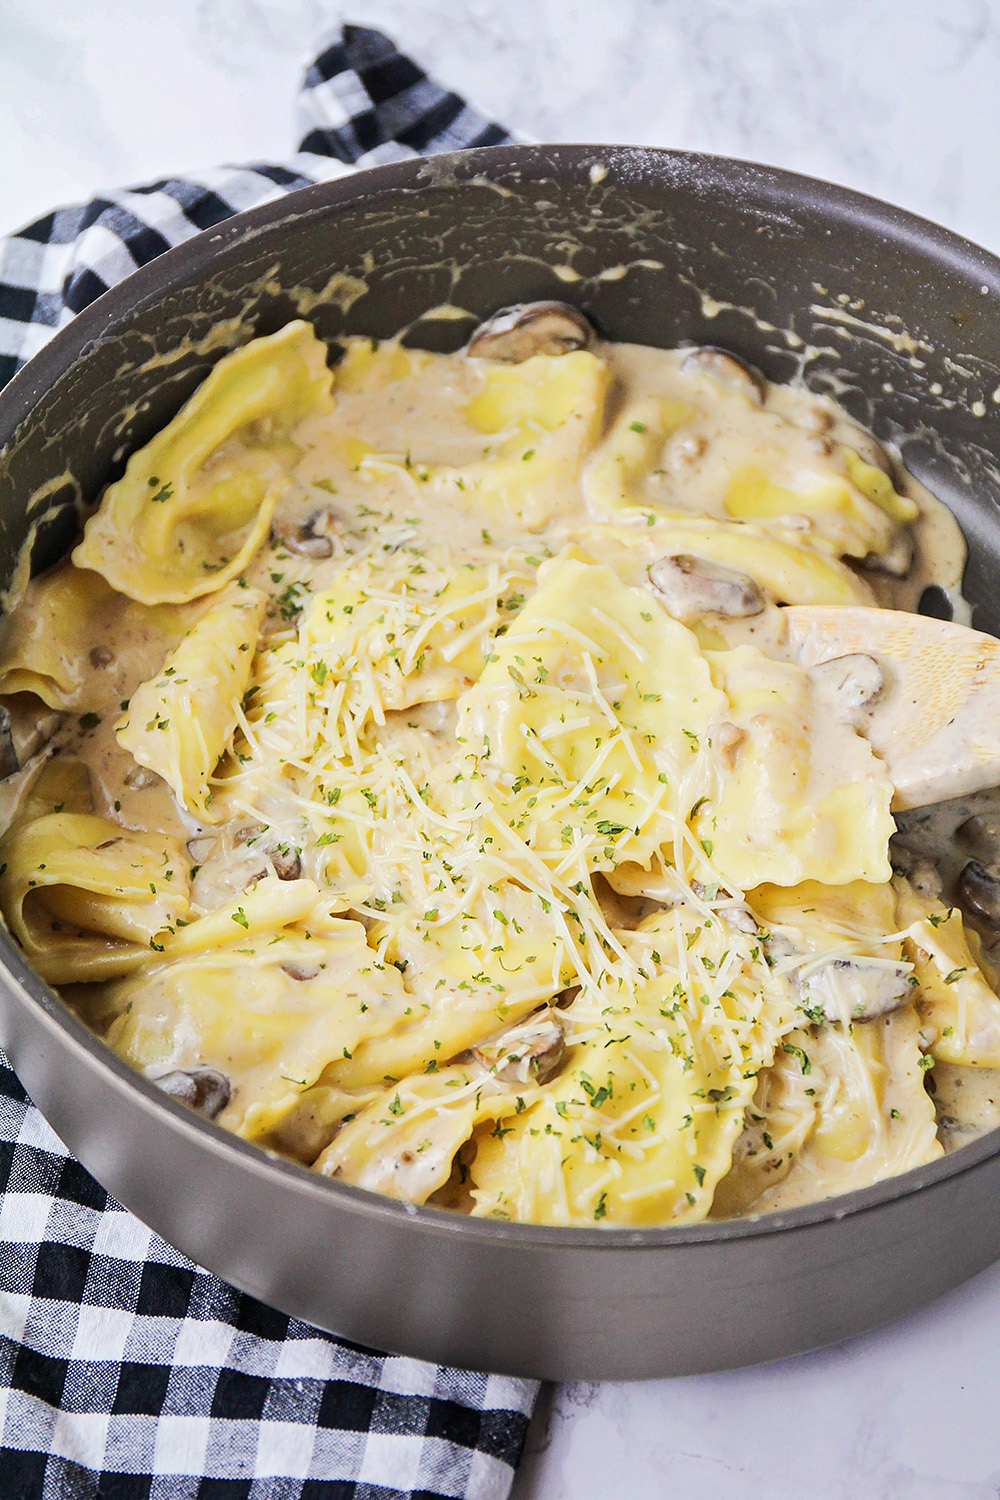 This savory ravioli with mushroom cream sauce is a flavorful and delicious meal that's ready in 30 minutes!